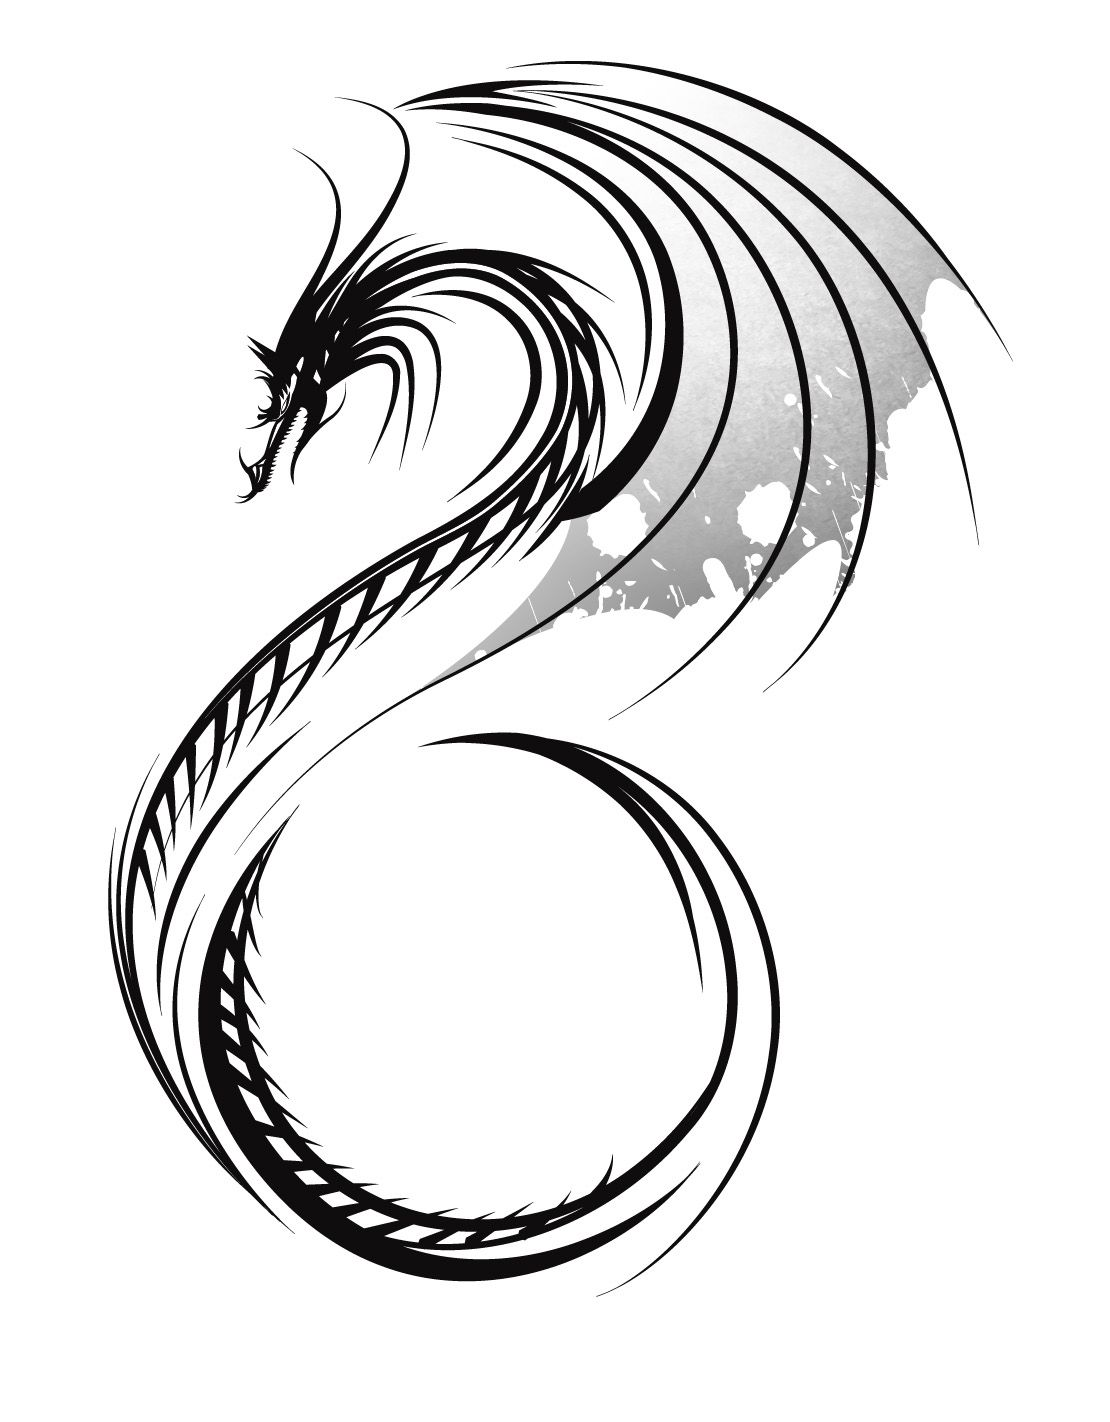 Welsh dragon tattoo designs - Find This Pin And More On Ideas Tatuaje Small Dragon Tattoos